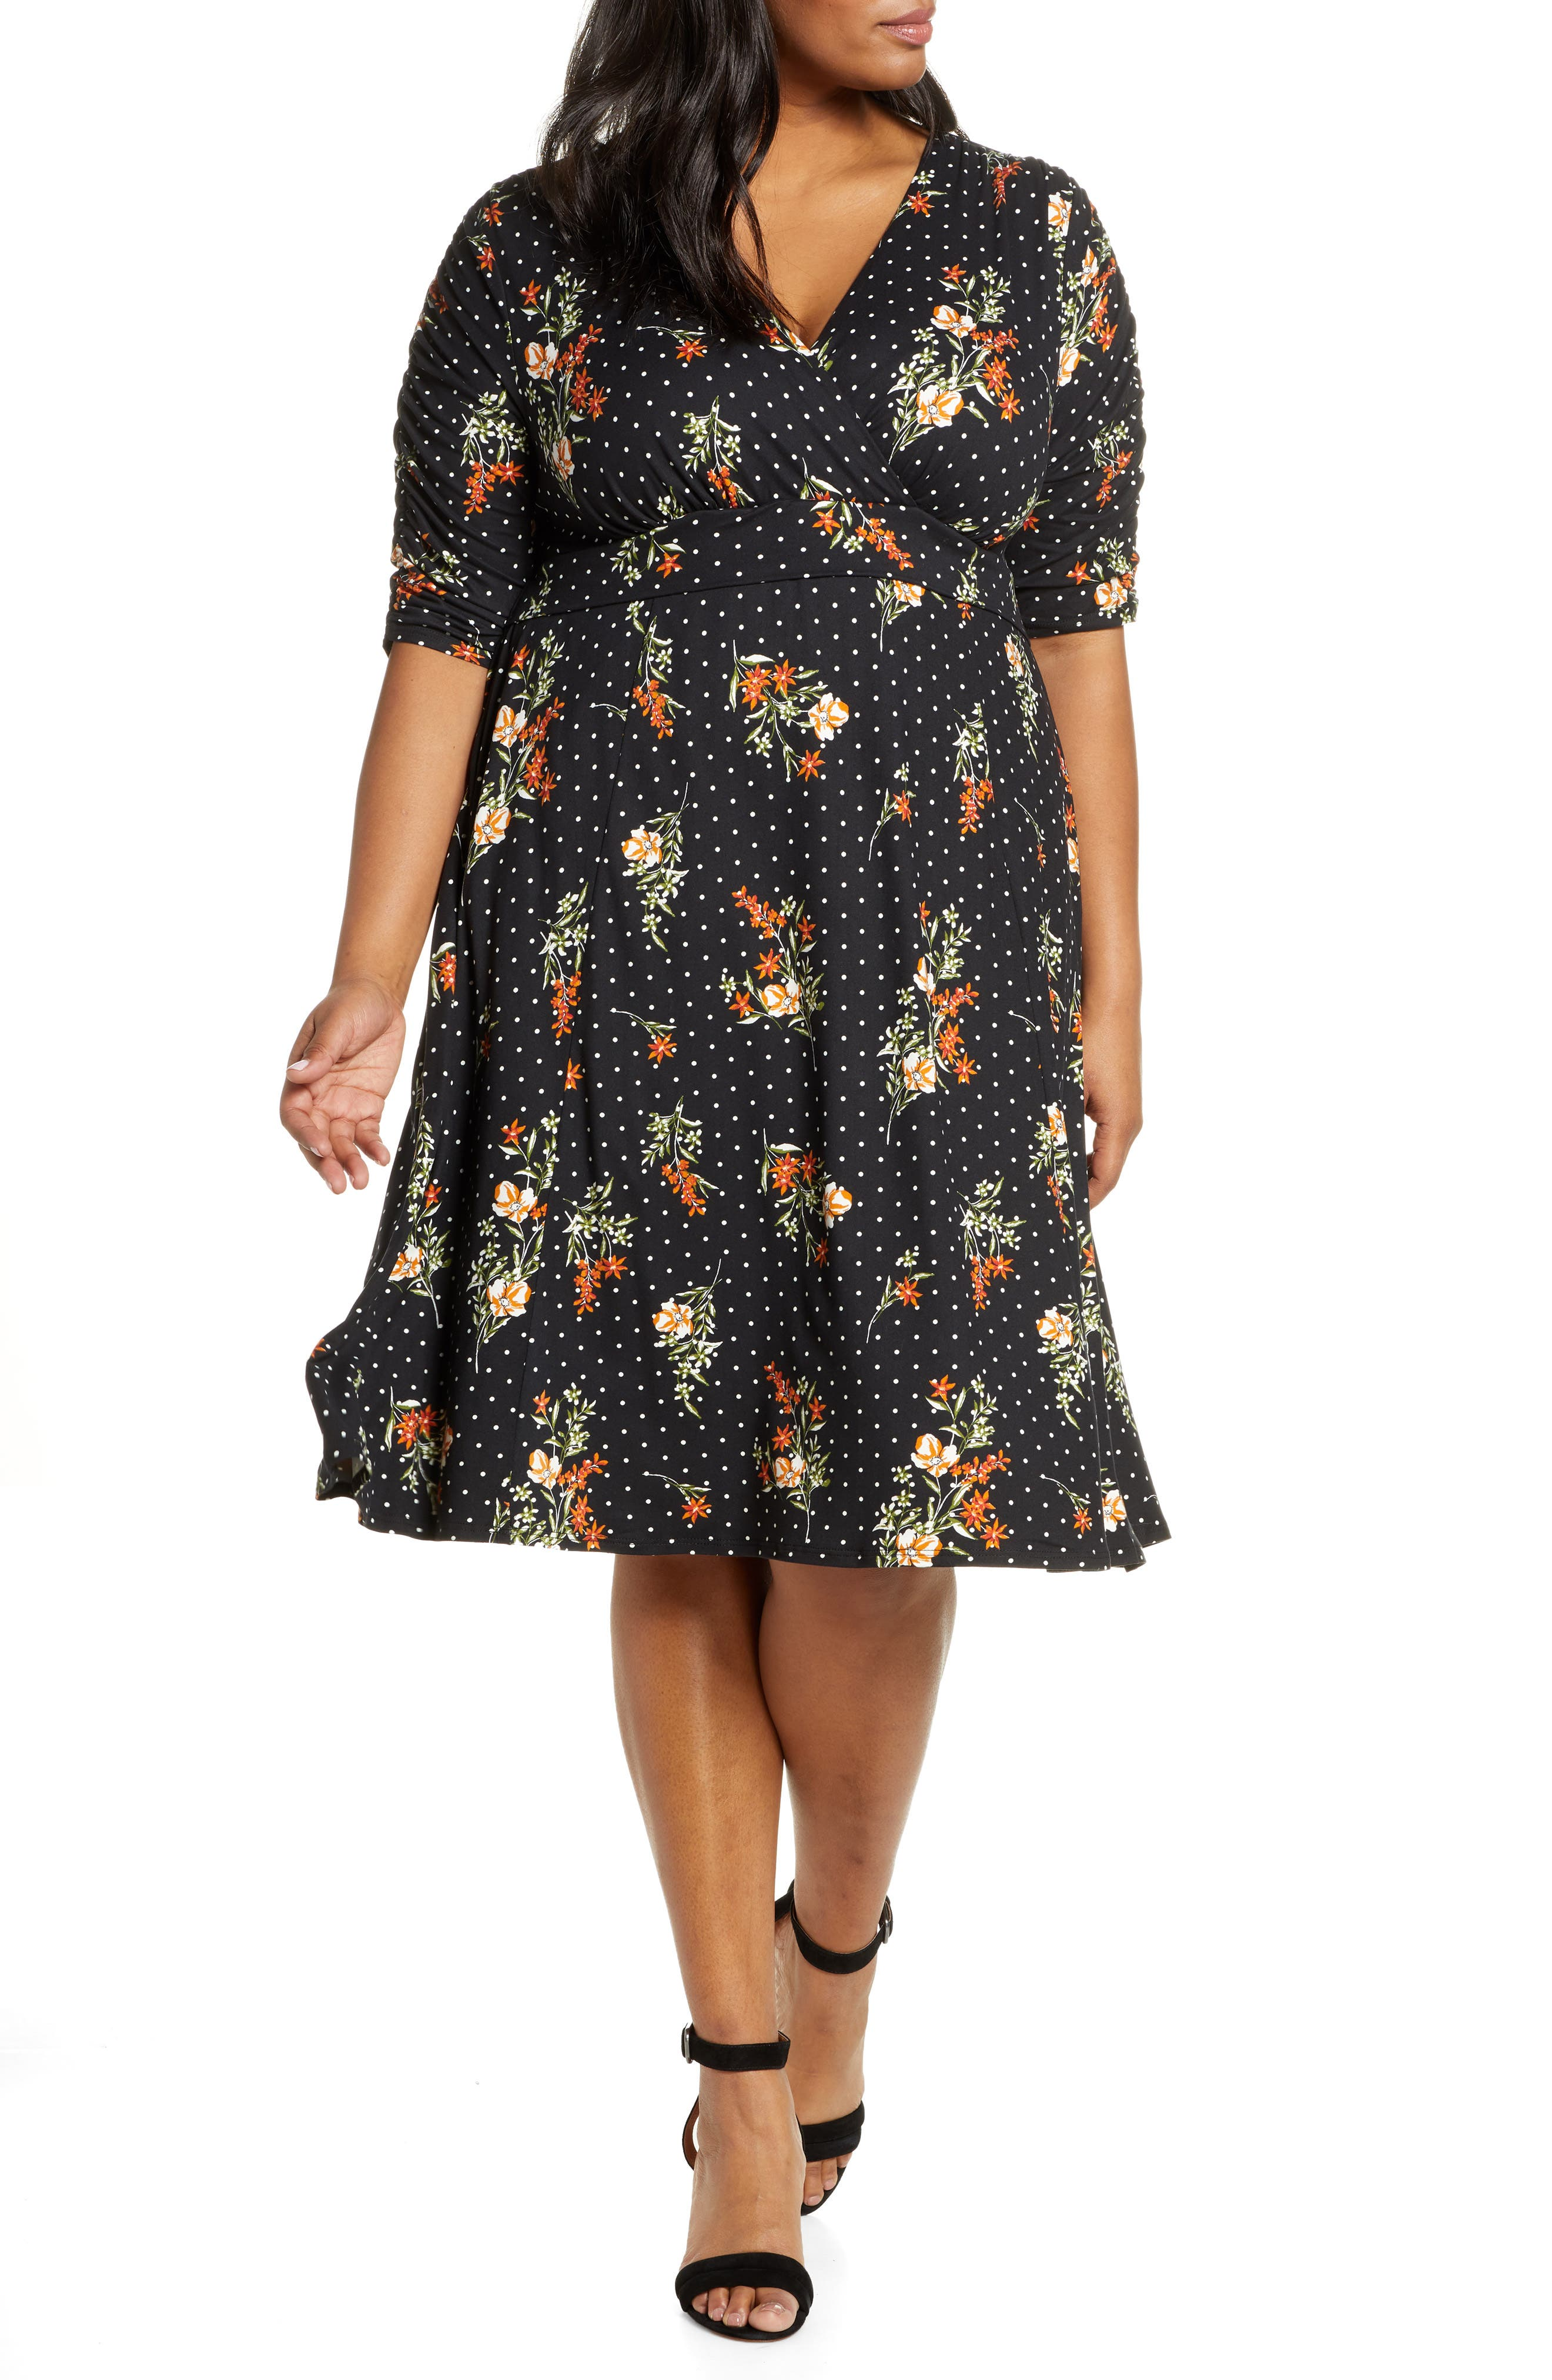 1940s Clothing Plus Size Womens Kiyonna Gabriella Print Jersey A-Line Dress $108.00 AT vintagedancer.com